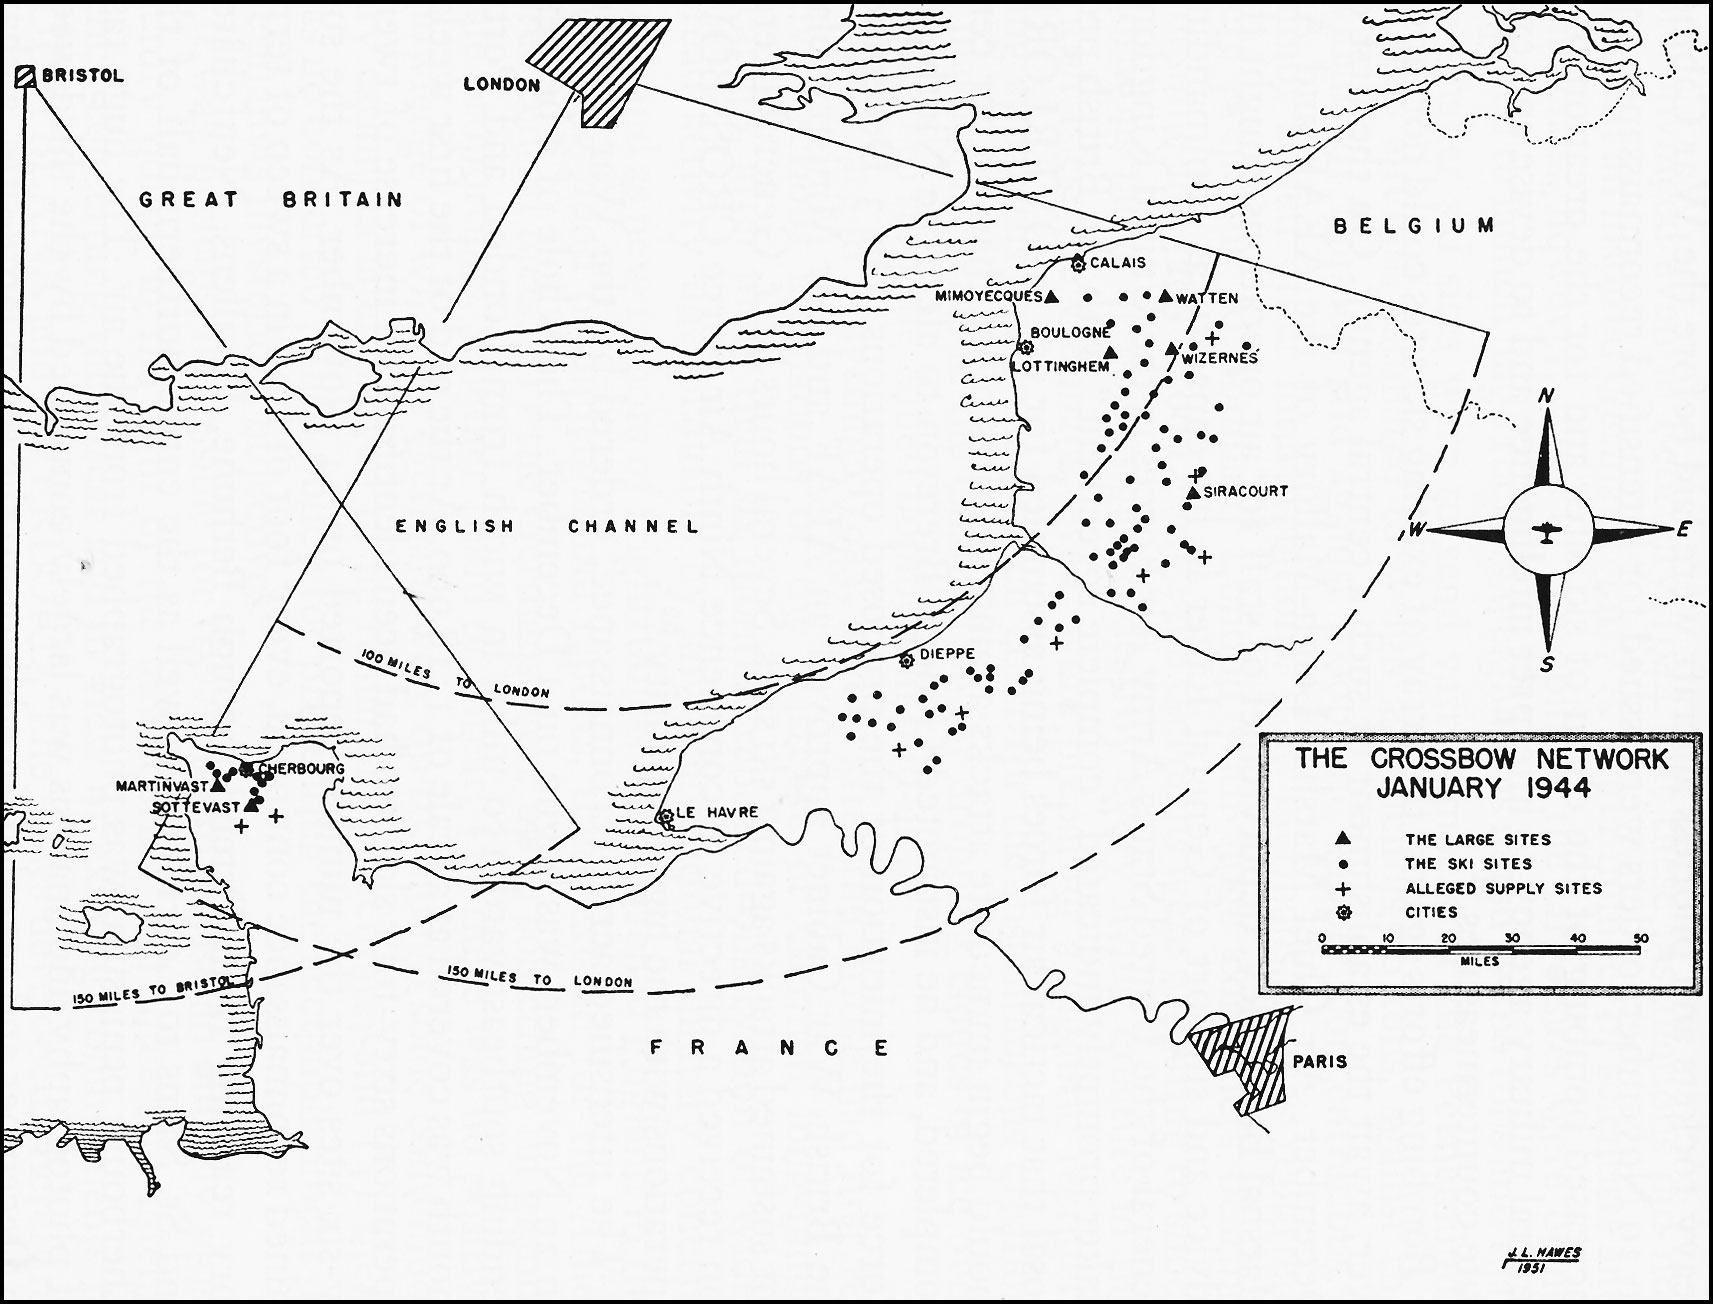 hyperwar army air forces in world war ii volume iii europe Midieval Crossbow Diagram map the crossbow network january 1944